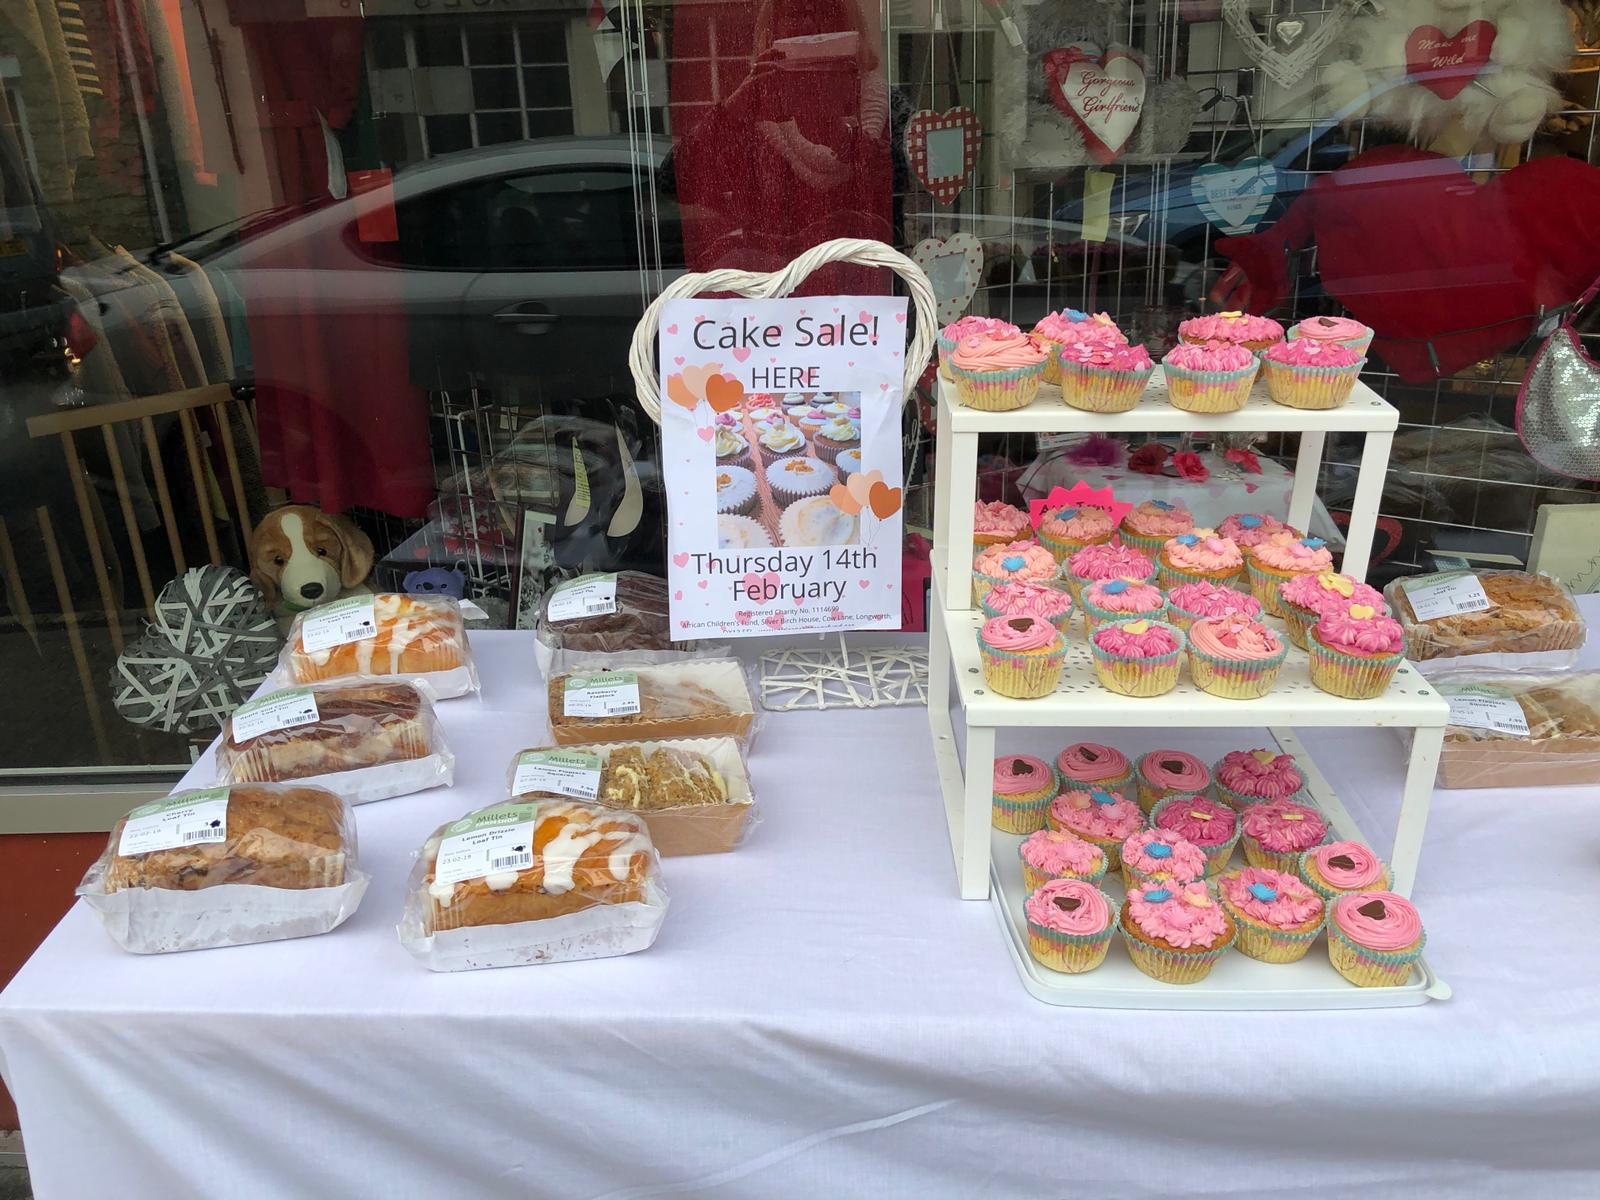 A table with loaf cakes and a display of pink-iced cupcakes on it.